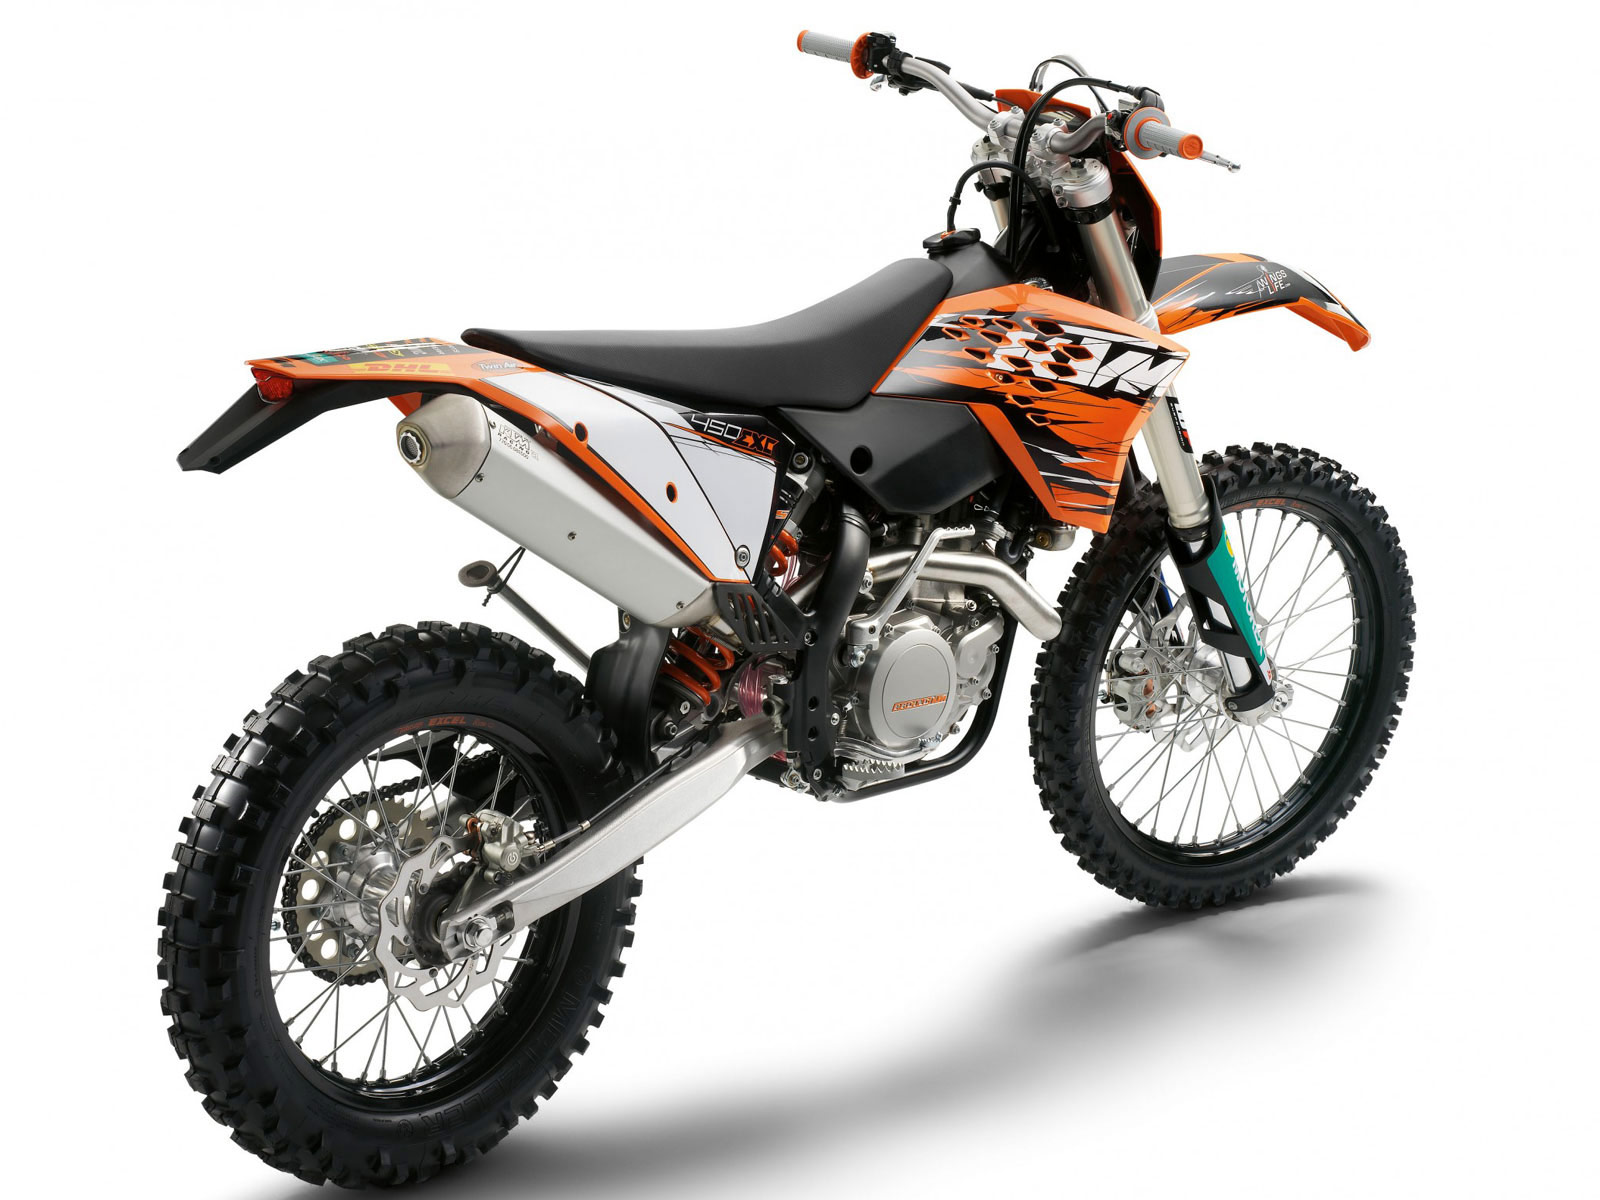 ktm 450 exc champions edition 2010 pictures specs. Black Bedroom Furniture Sets. Home Design Ideas